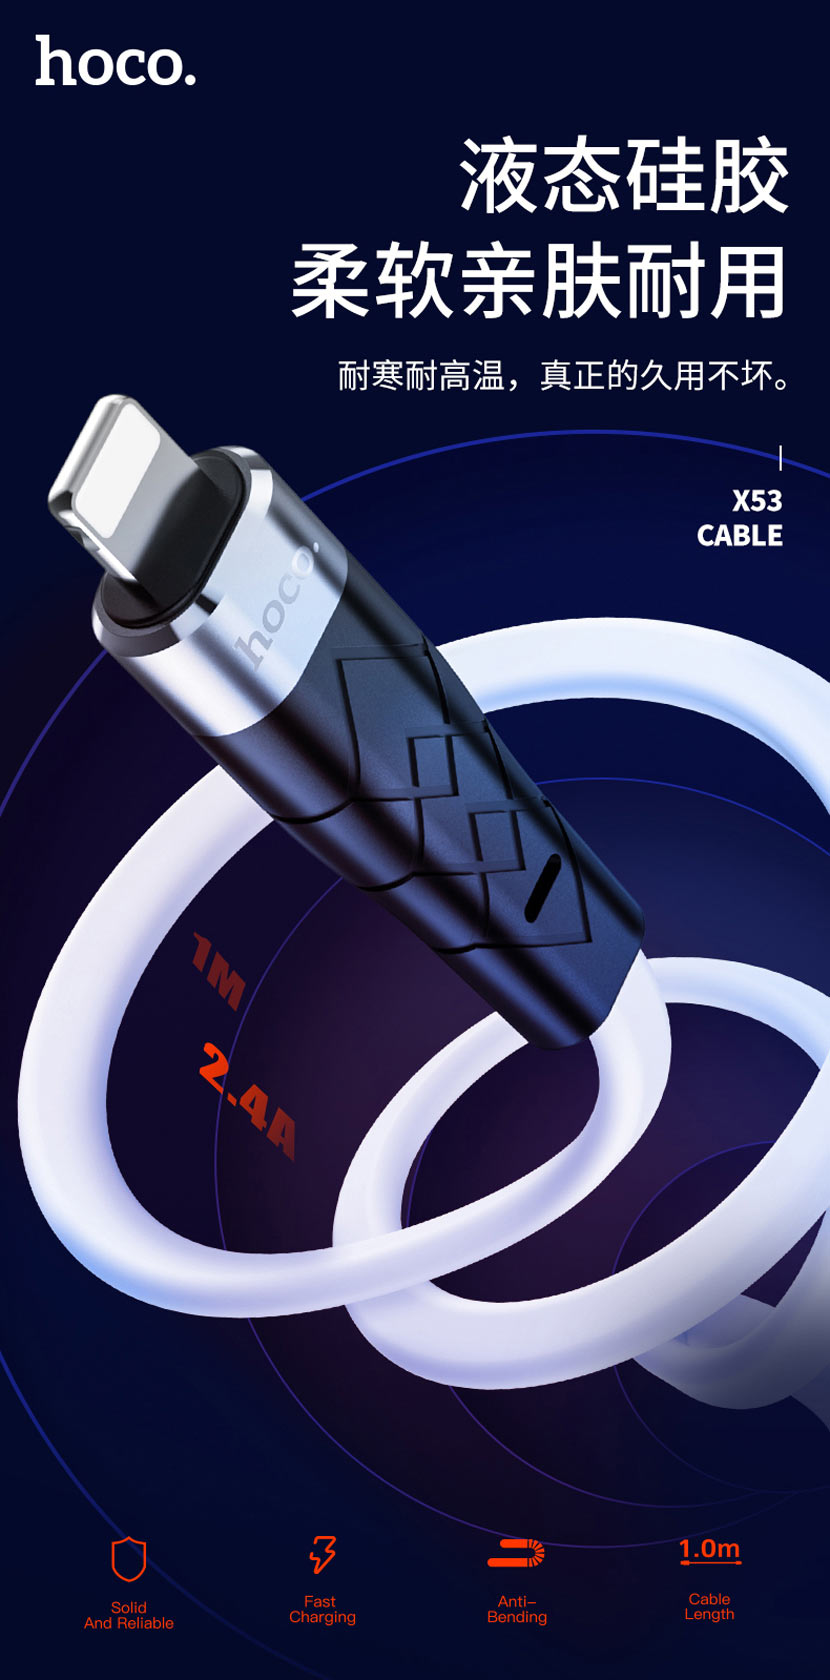 hoco news x53 angel silicone charging data cable cn